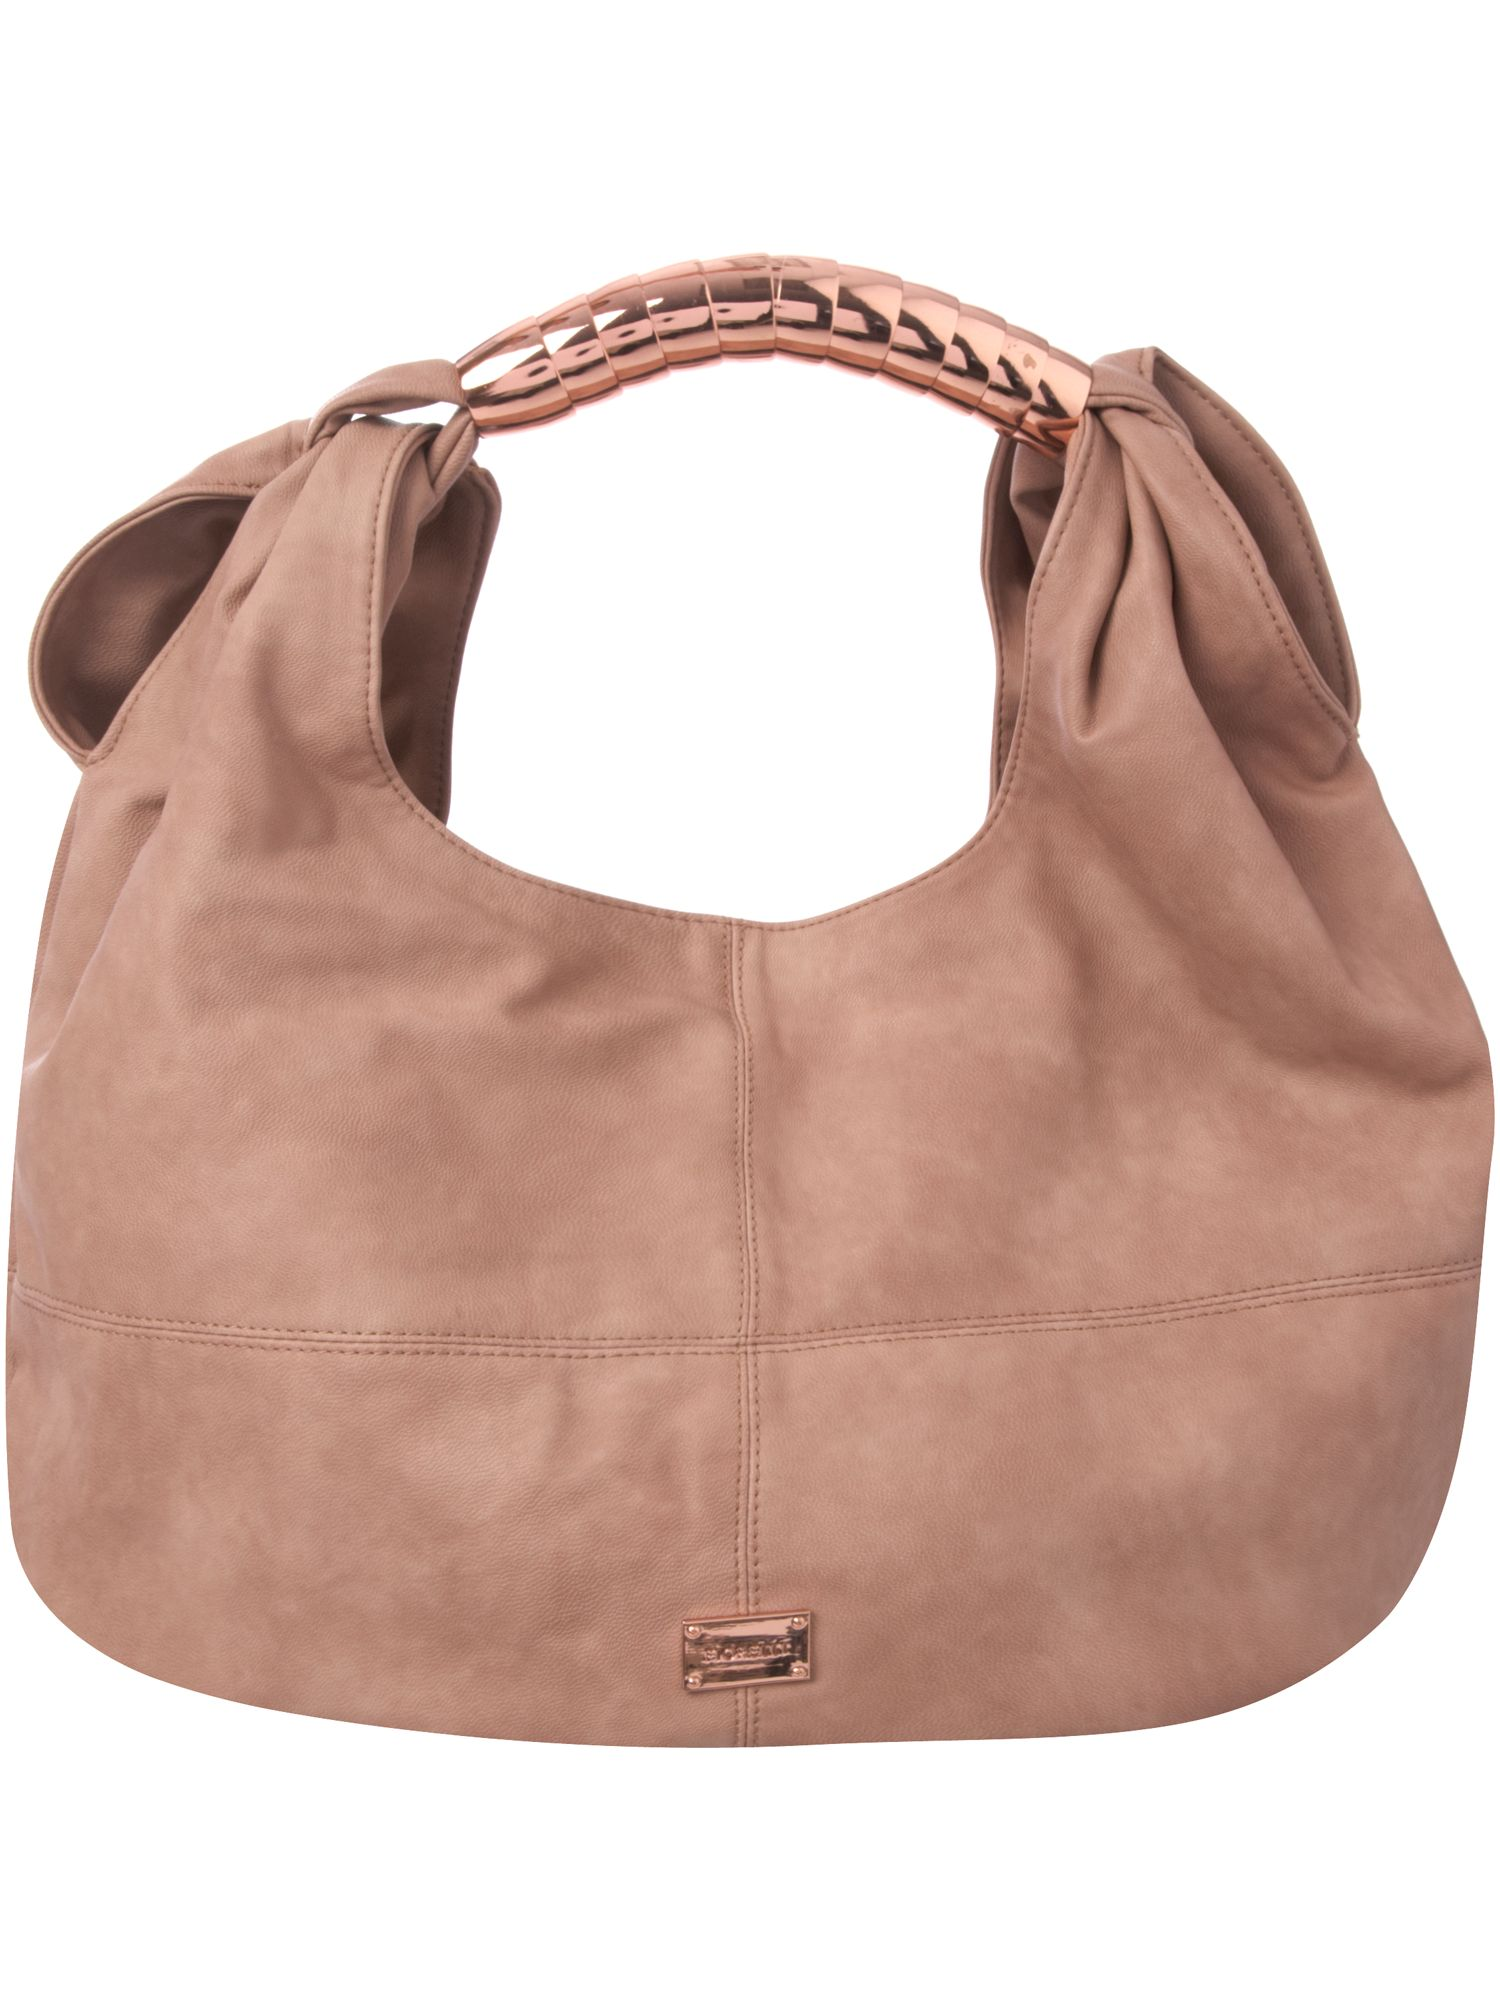 Fiji, large shoulder hobo bag